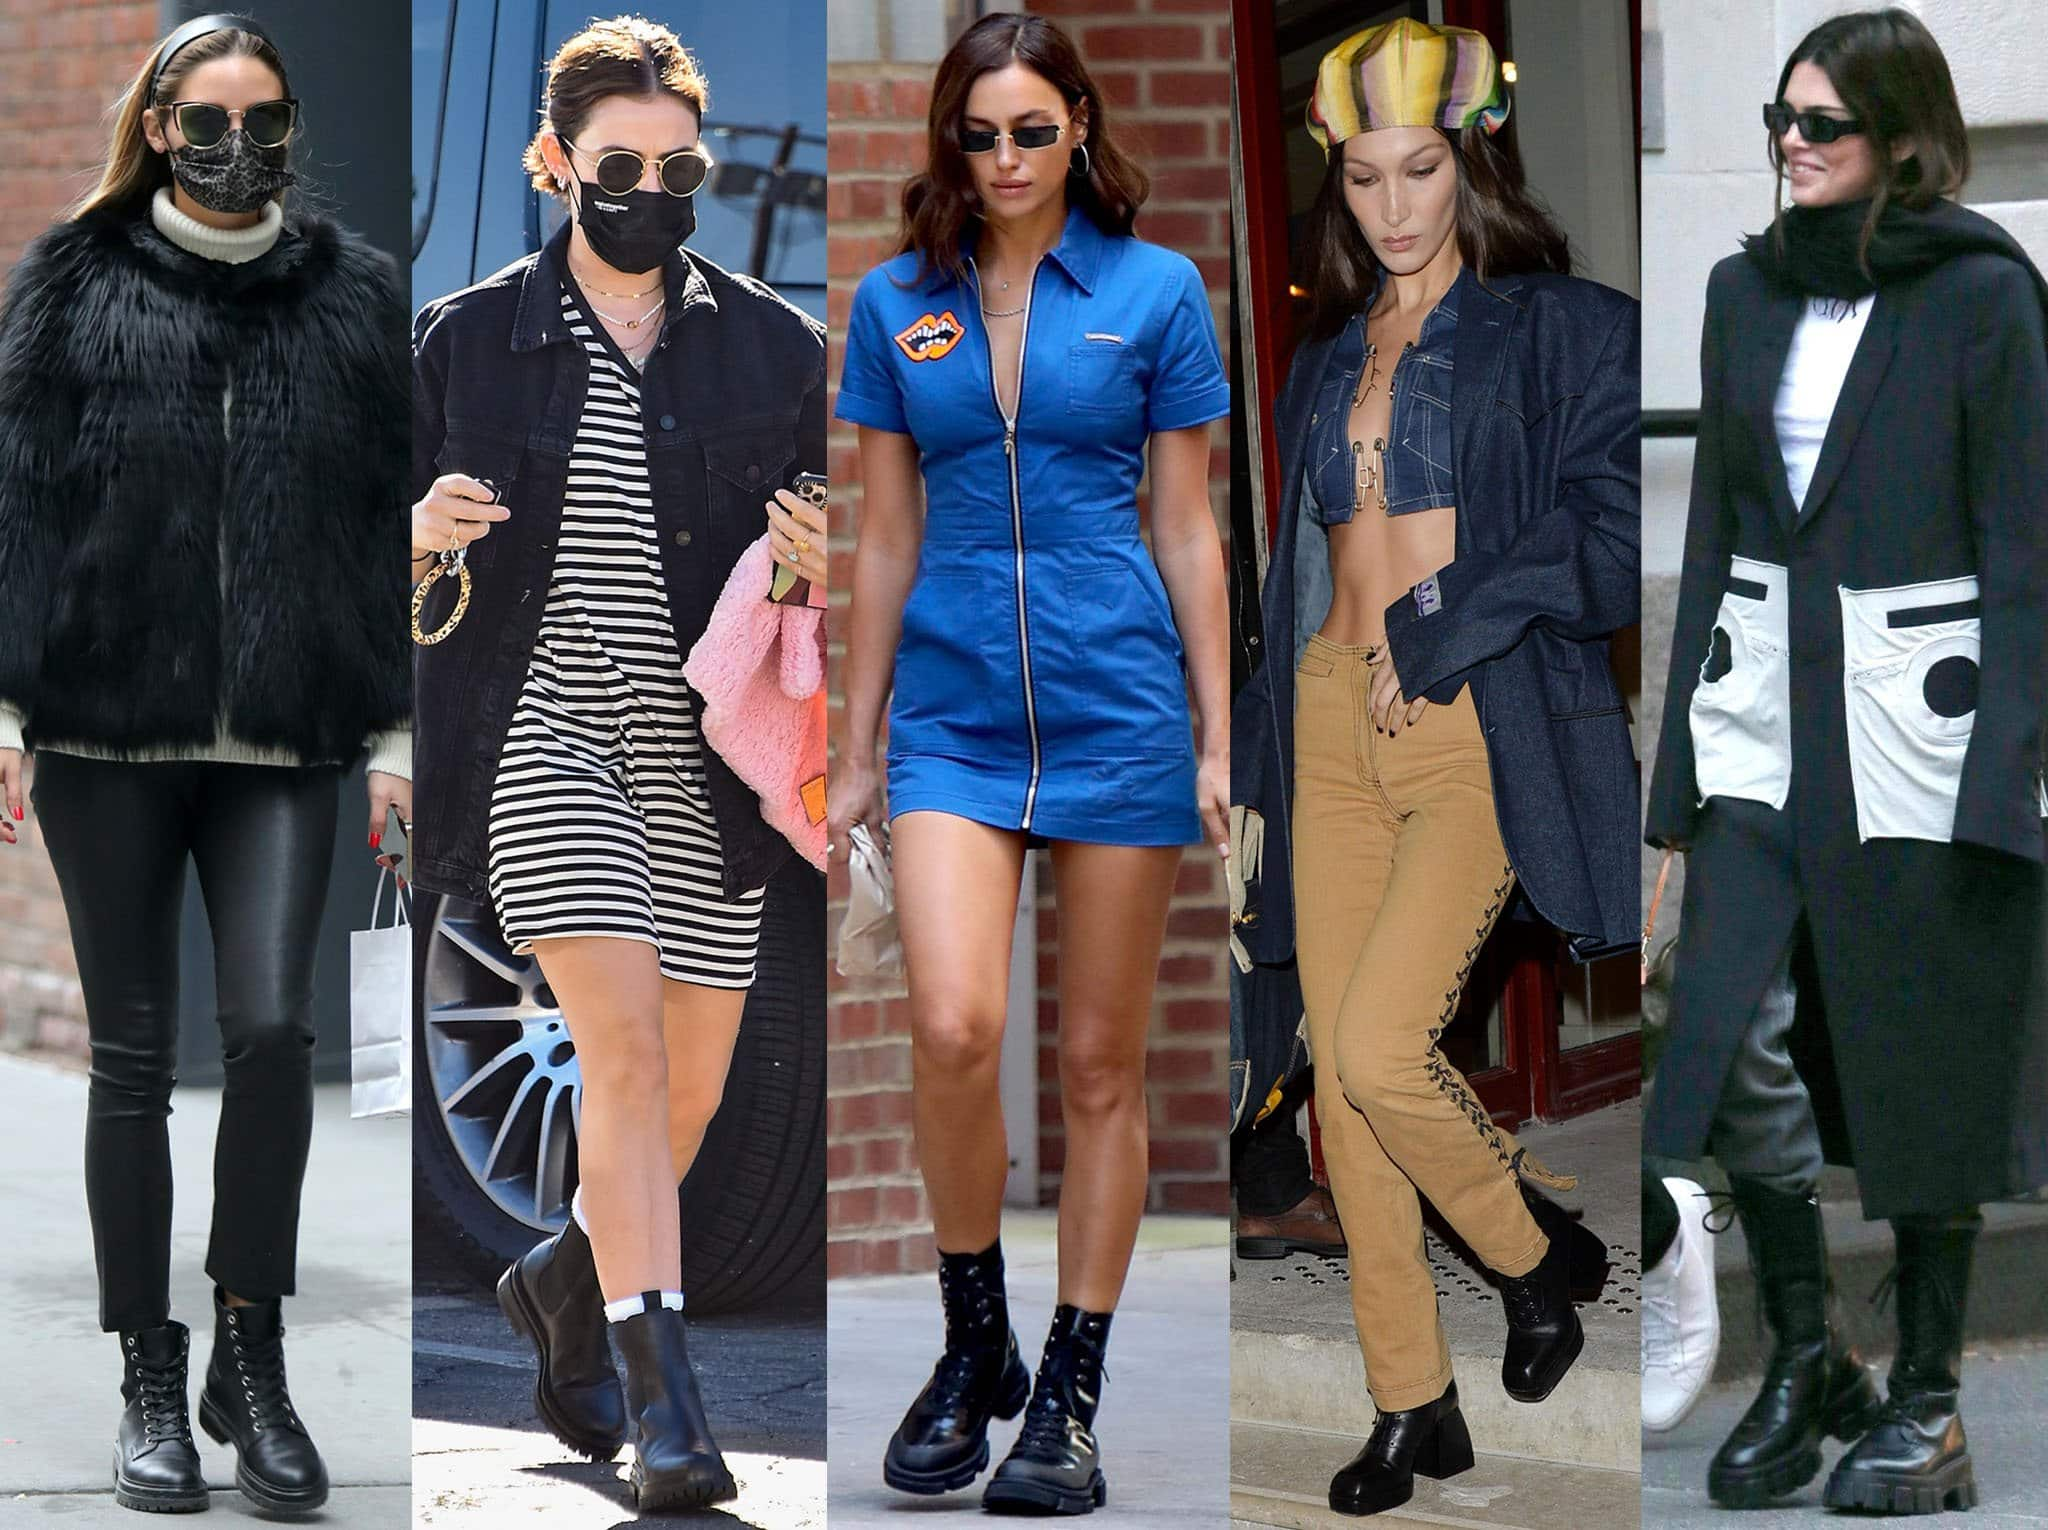 Celebrities Olivia Palermo, Lucy Hale, Irina Shayk, Bella Hadid, and Kendall Jenner are embracing the lug sole boot trend